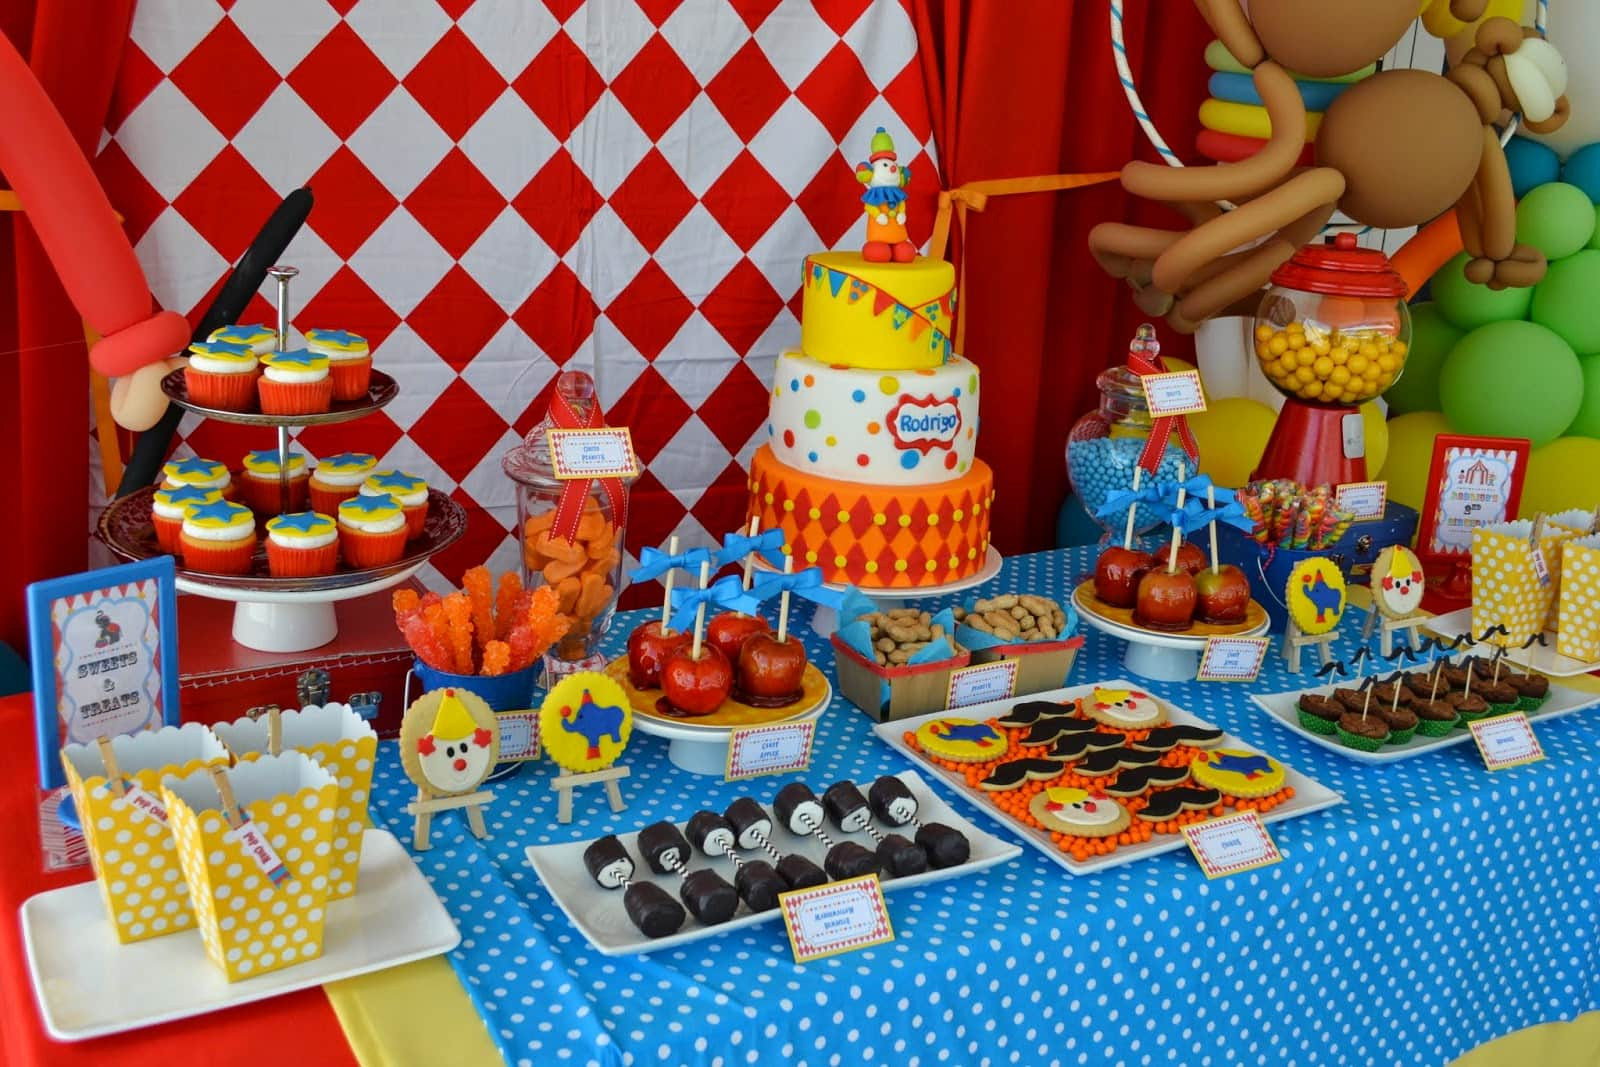 8 Year Old Boy Birthday Party Theme Ideas  33 Awesome Birthday Party Ideas for Boys